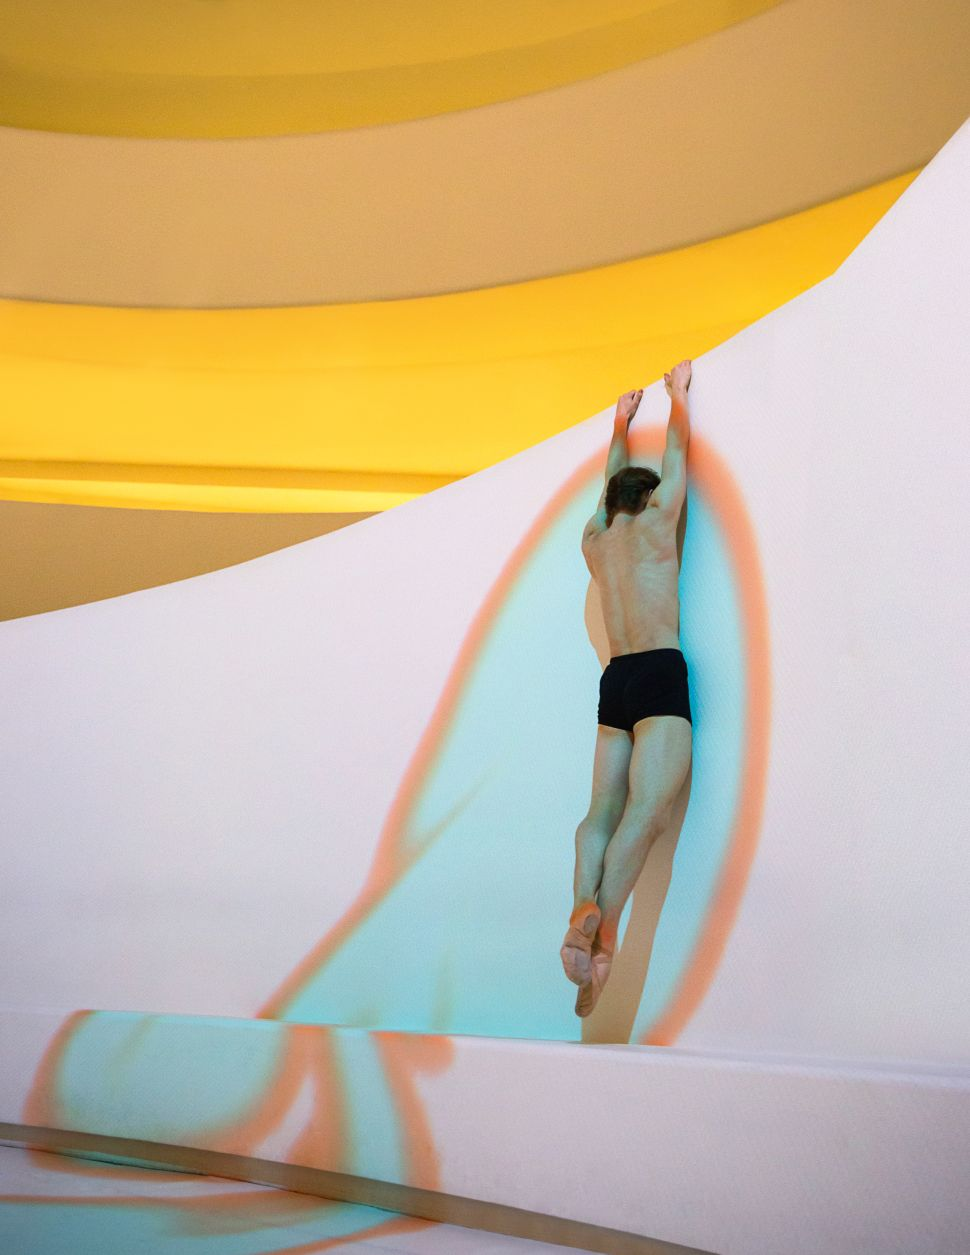 A Motion Capture Ballet Is Coming to Frank Lloyd Wright's Guggenheim Rotunda